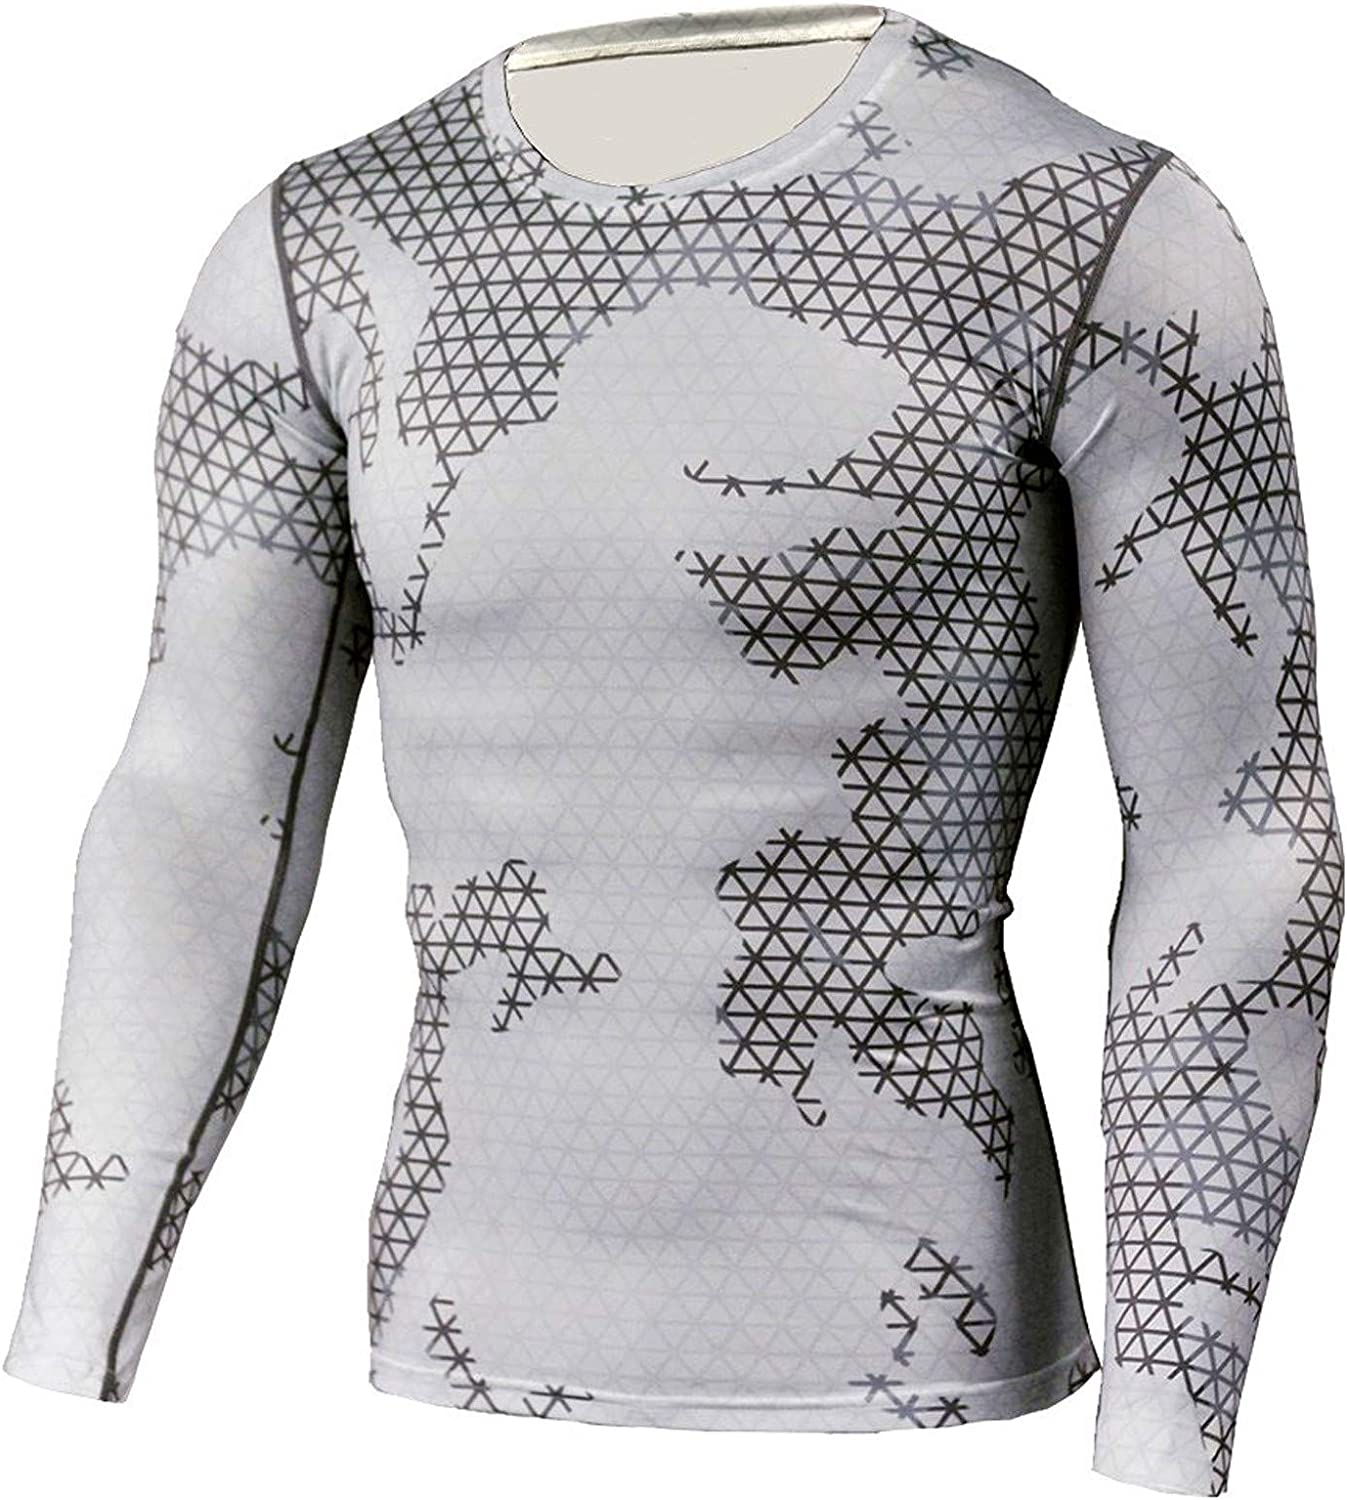 Men's Fitness Long Sleeve Shirts and Legging Quick Dry Sport Suits Fashion Printed Gyming Tops Pants Suits